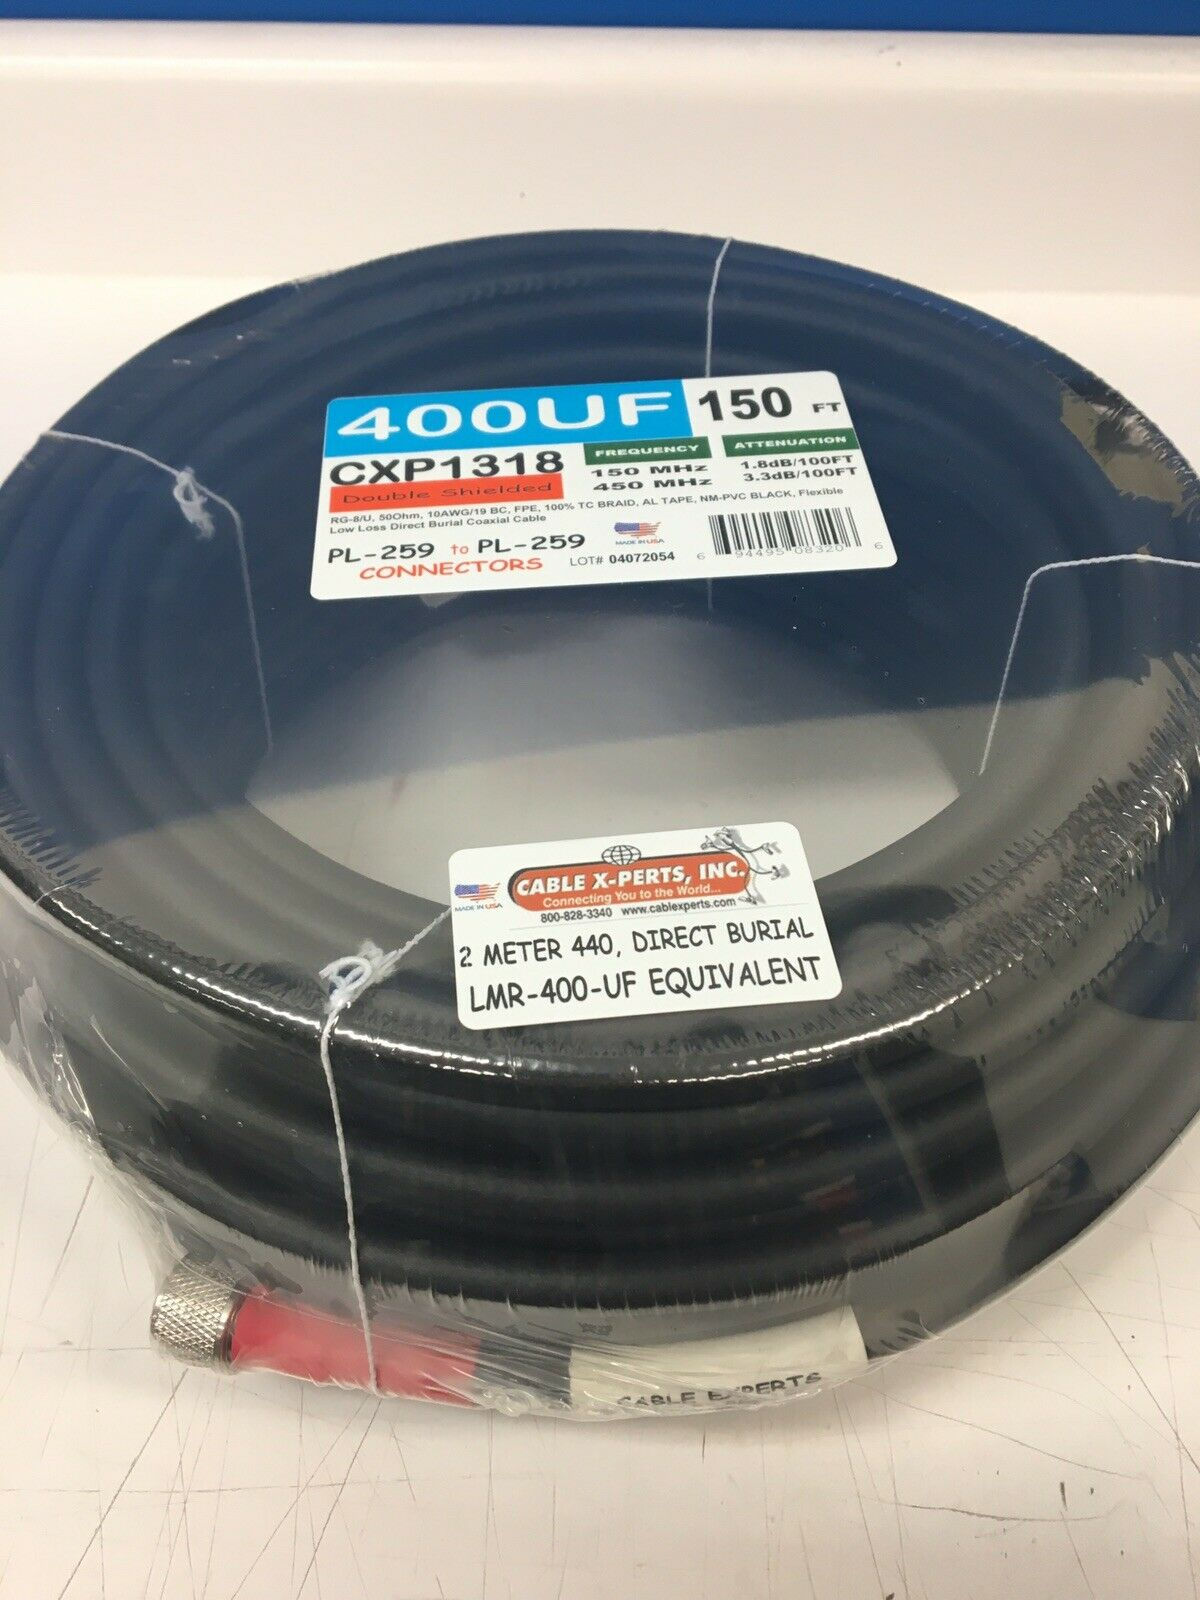 150' LMR-400 Flex Cable X-Pert Stranded Coax /2 PL-259 Direct Bury Super Lo Loss. Available Now for 185.00